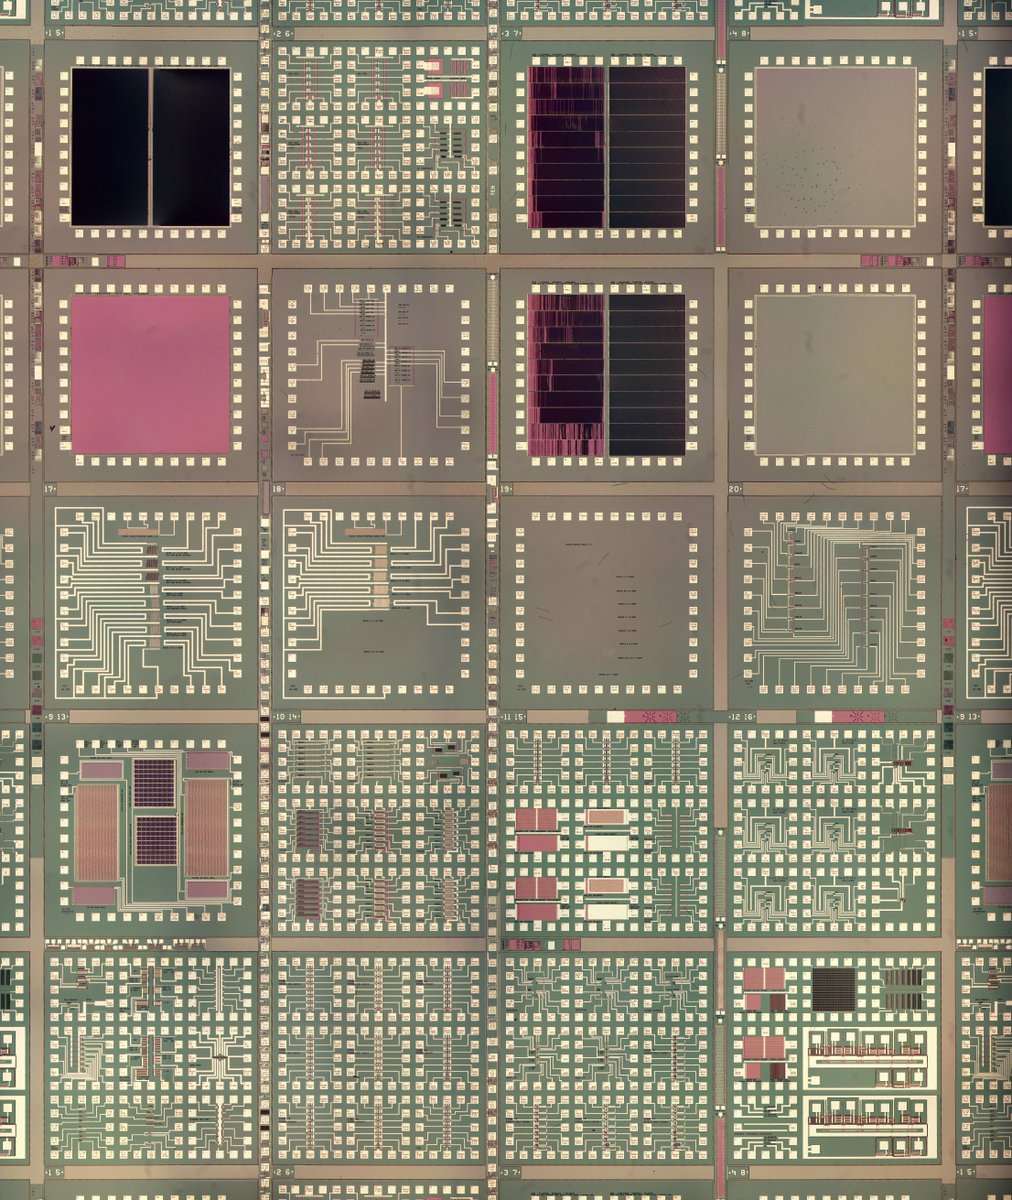 Unusual Dallas Semiconductor wafer is entirely test circuitry, with 20 test blocks repeated over the wafer. Everything from transistors of different sizes to flash memory cells. Not shown: resistors of many types, anti-fuses, capacitors, isolation, and other chip structures.